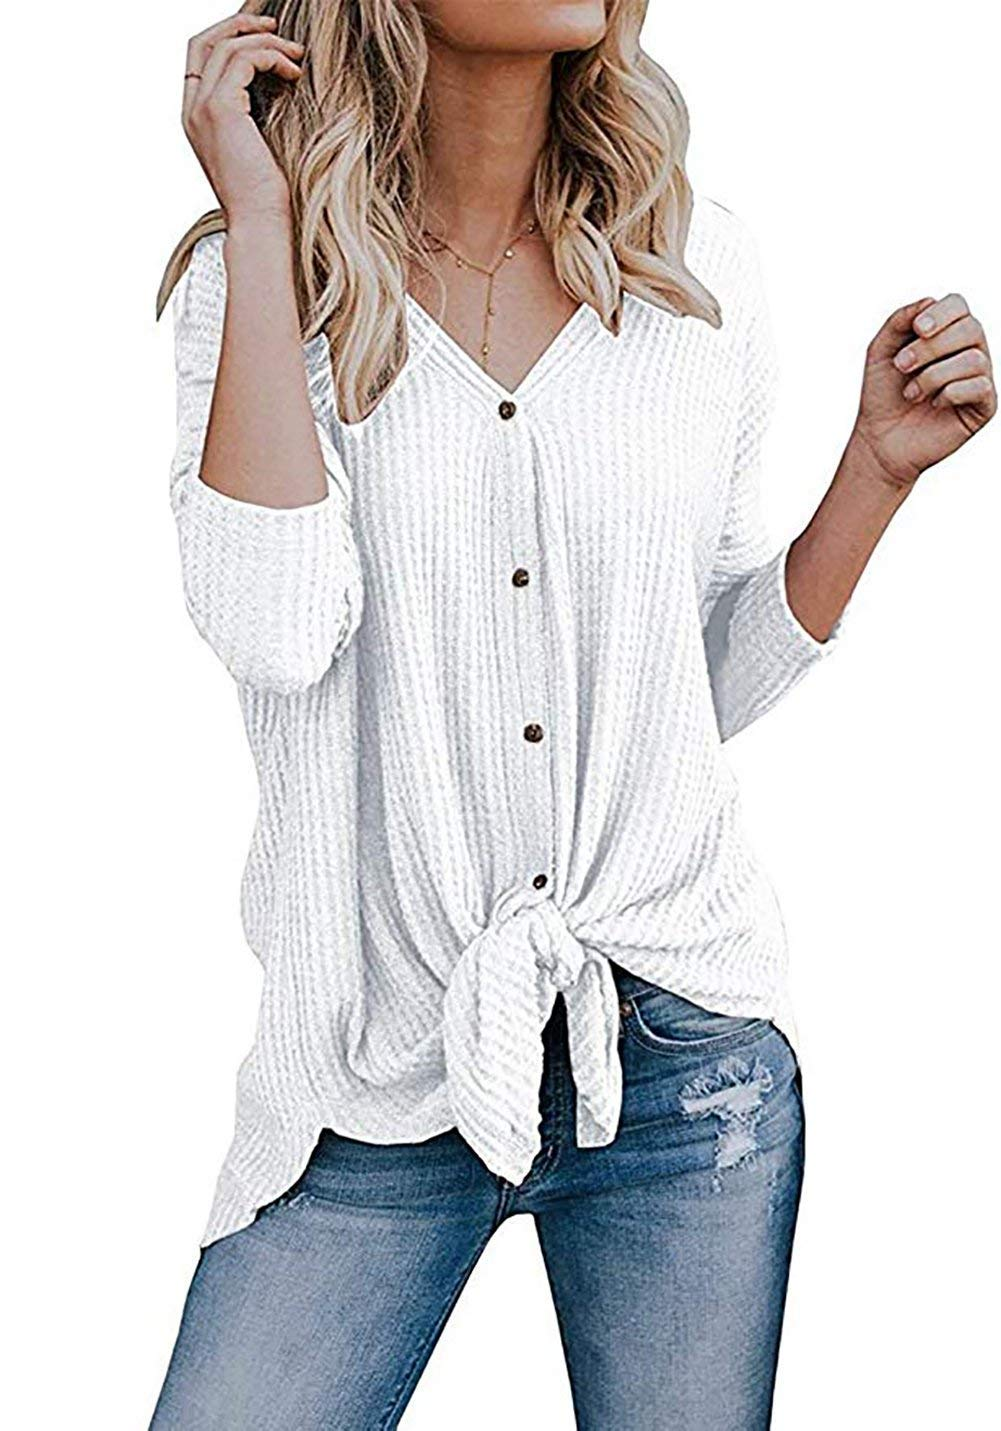 HBEYYTO Womens Loose Long Sleeve V Neck Button Down Henley Shirts Tie Front Knit Tunic Blouse Top White S